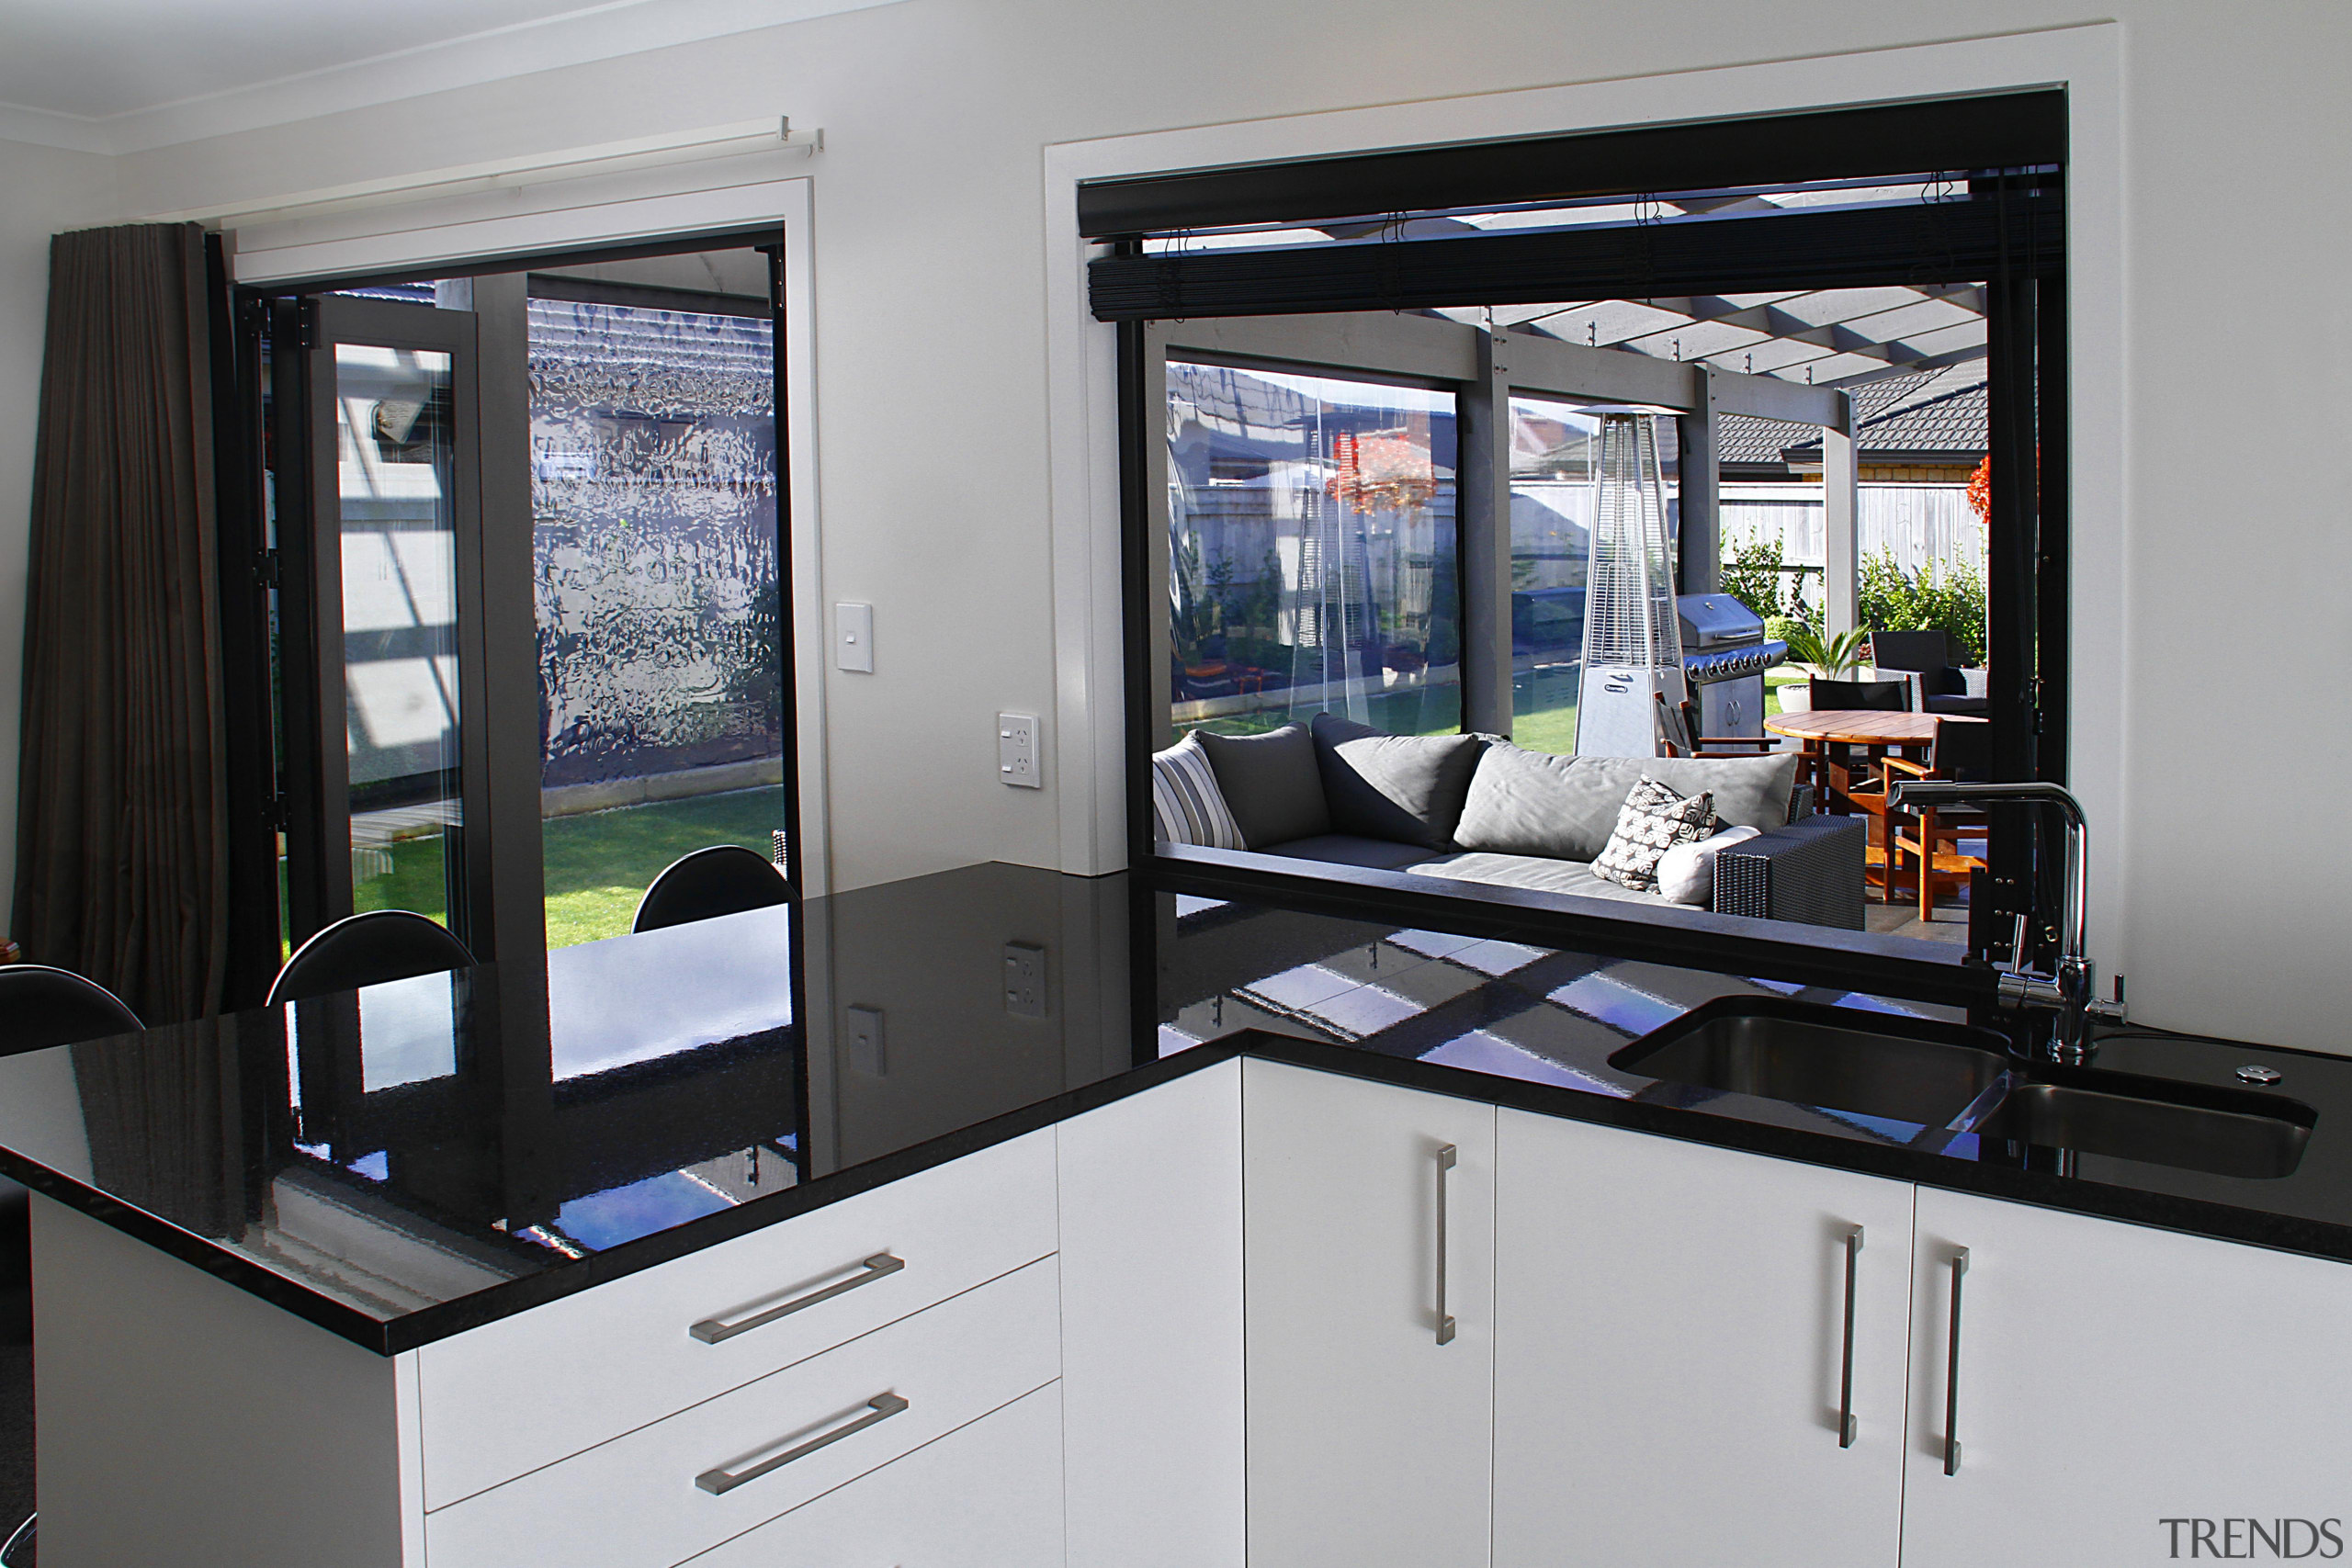 In this house by Fowler Homes Manawatu landscaped home appliance, kitchen, window, gray, black